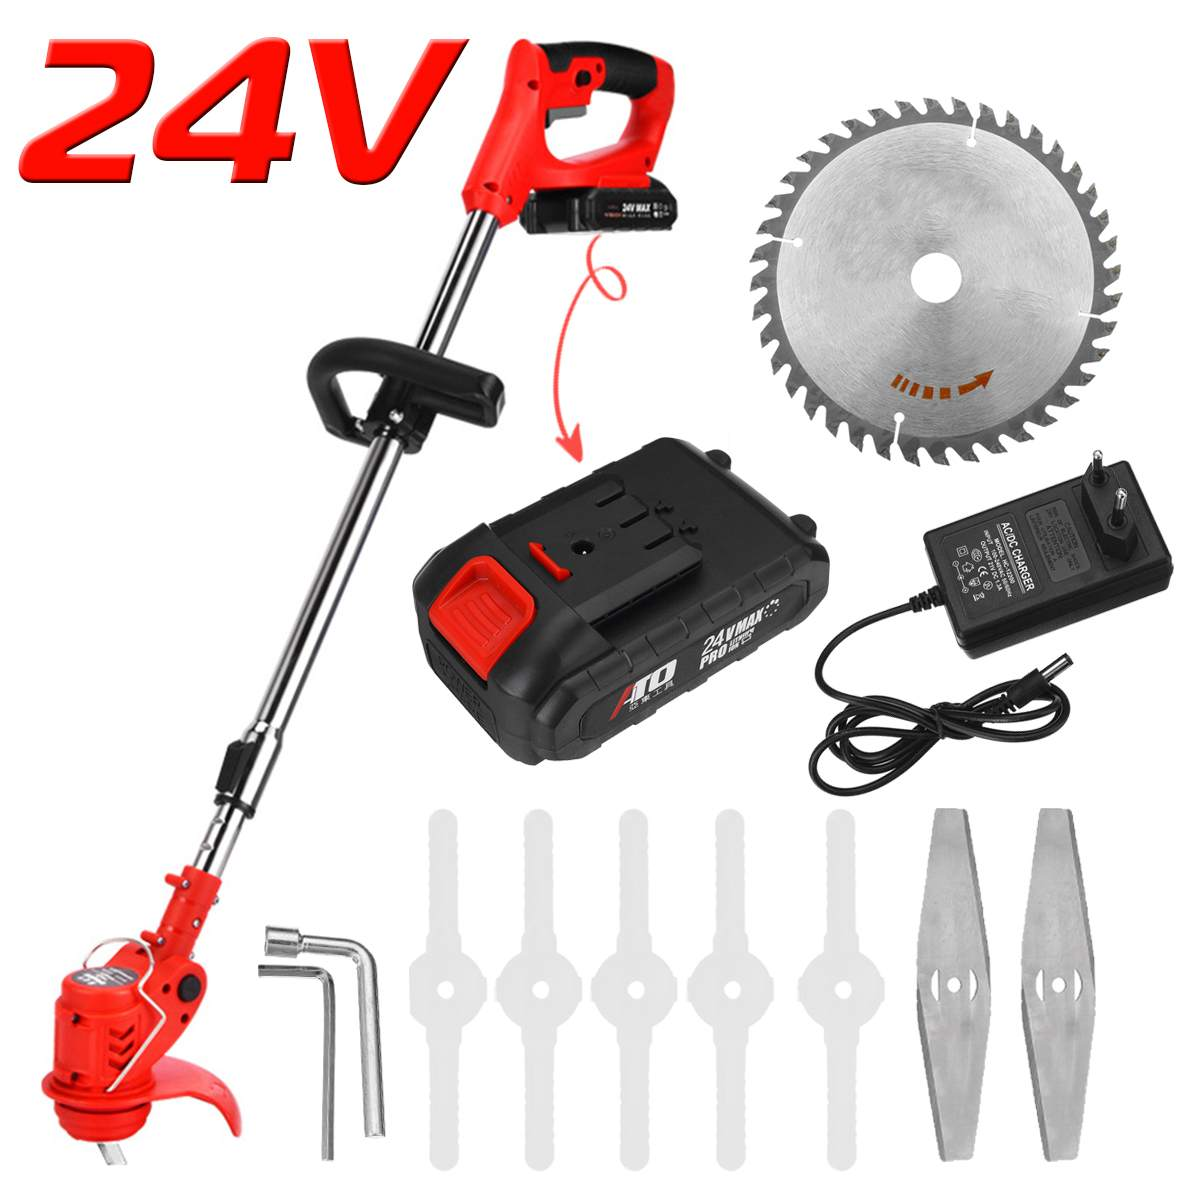 24V Cordless Electric Grass Trimmer with 7Pcs Blade 6000mh Battery Adjustable Lawn Mower Home Push Lawnmower Garden Power Tool